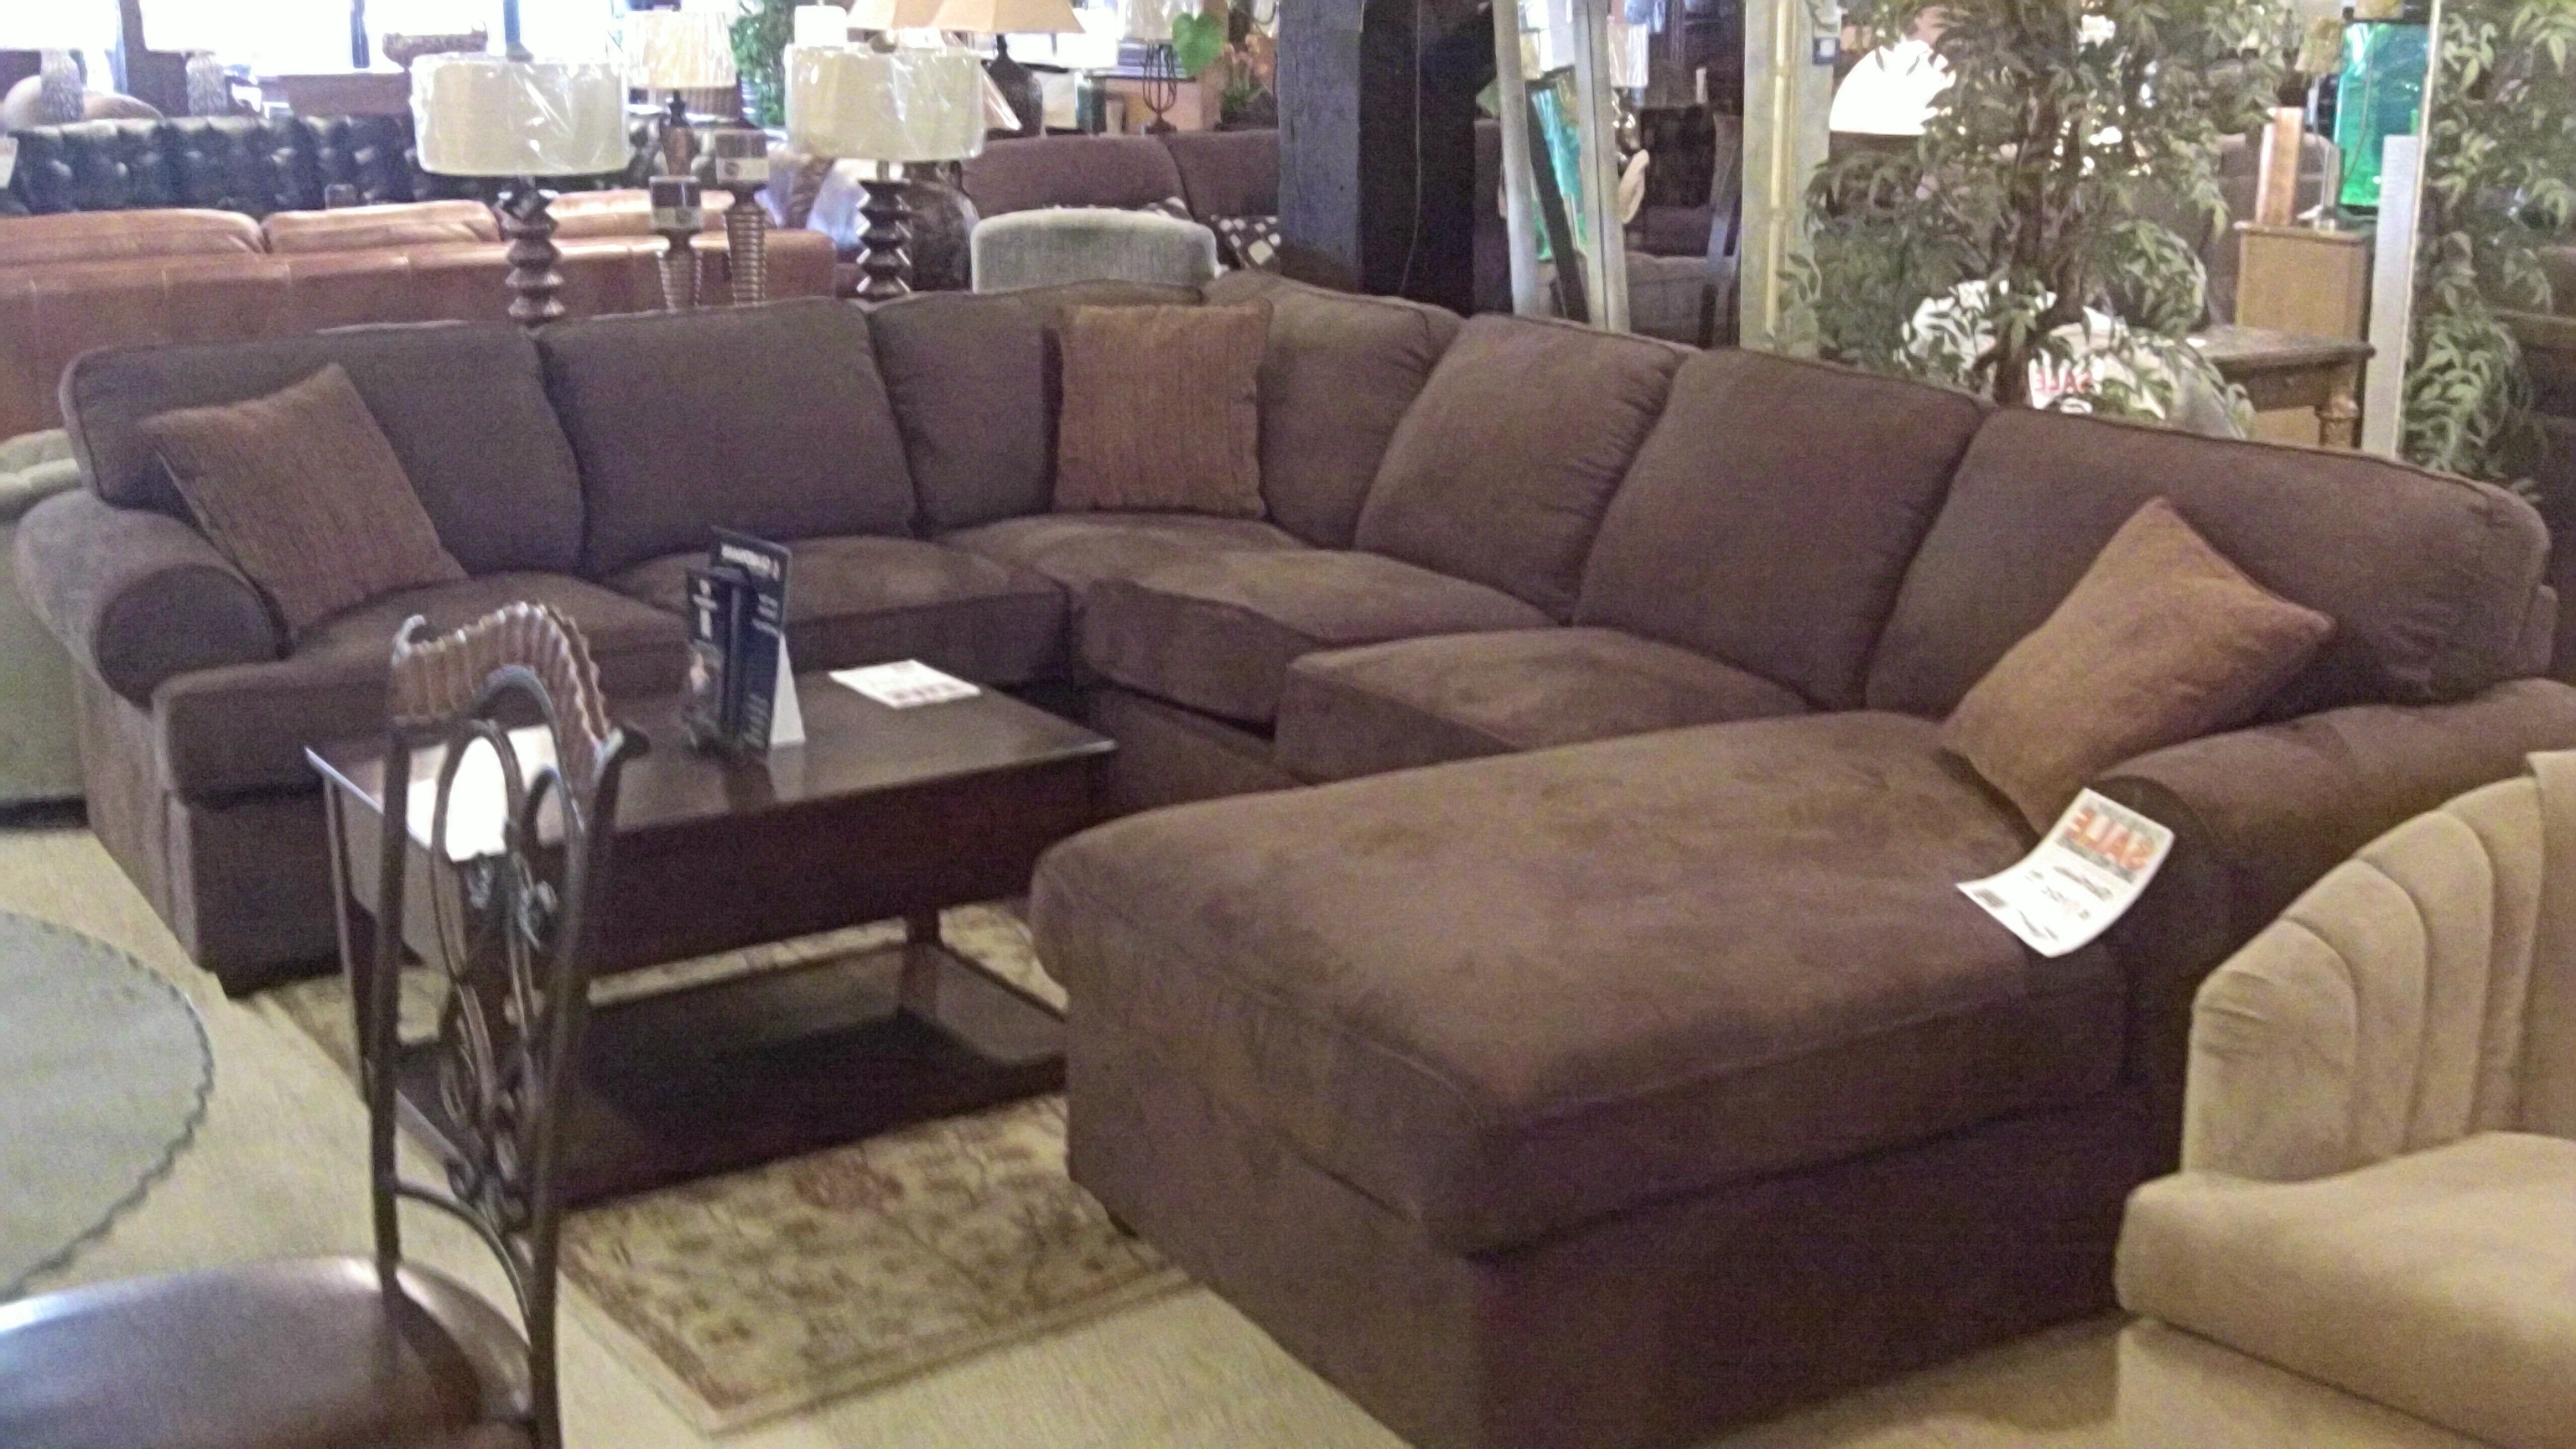 Home Design : Cool Best Modern Fabric Sectional Sofas With Chaise Regarding Recent Sectionals With Oversized Ottoman (View 11 of 15)